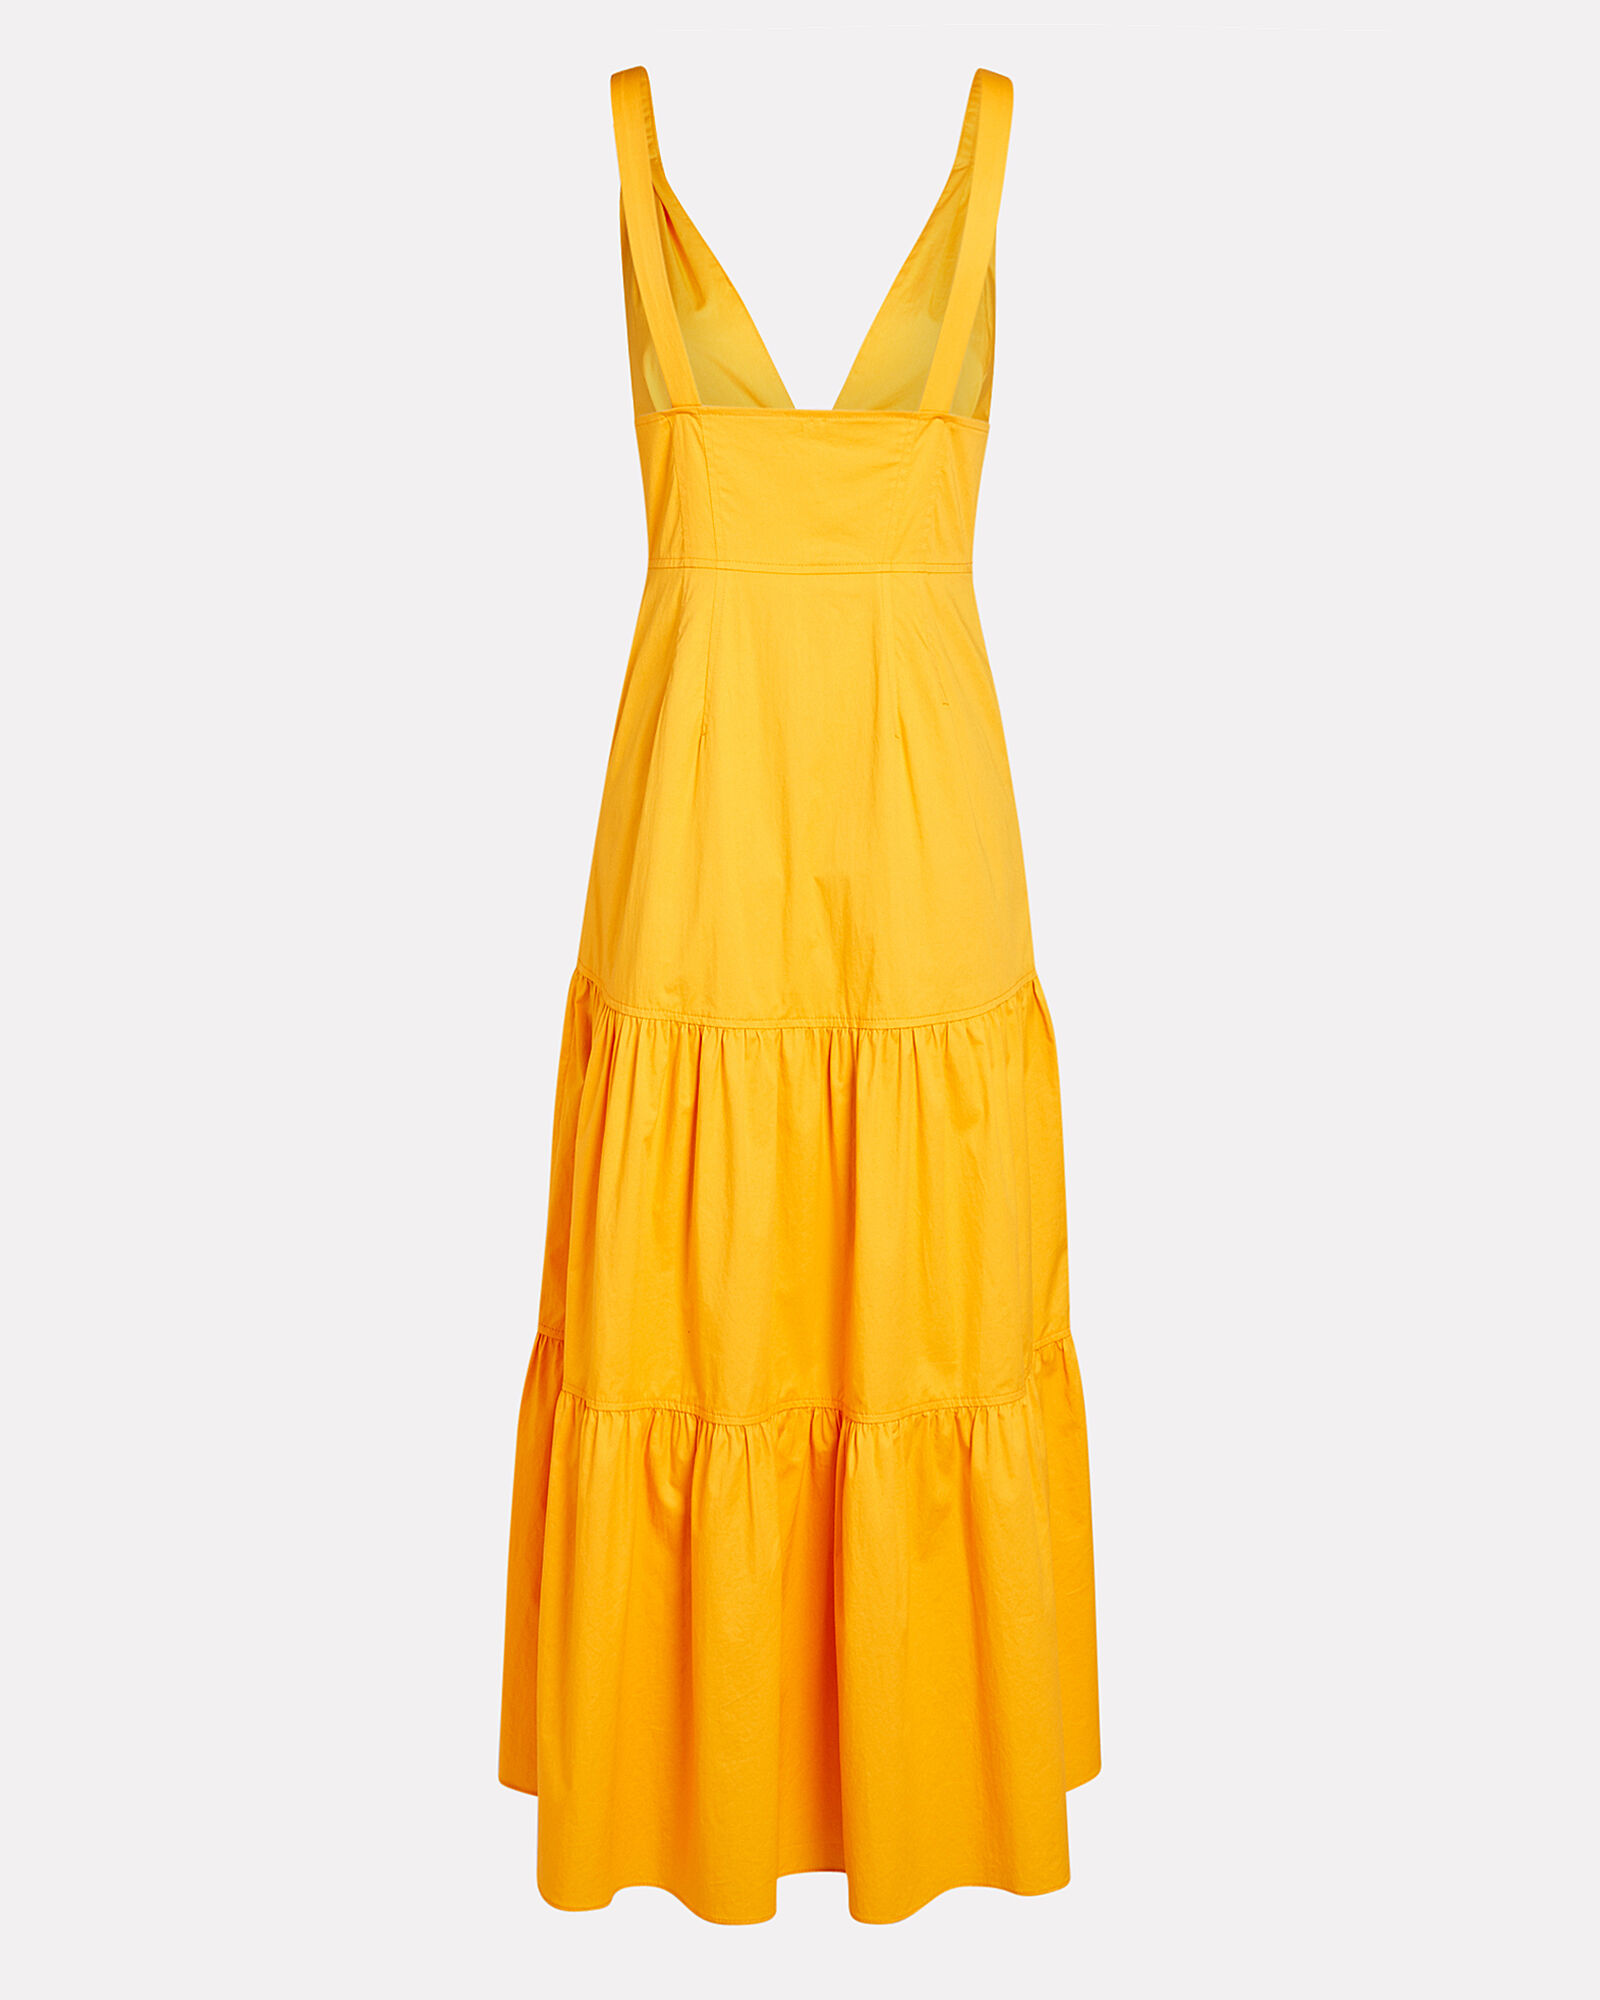 Jordyn Poplin Button-Down Midi Dress, YELLOW, hi-res